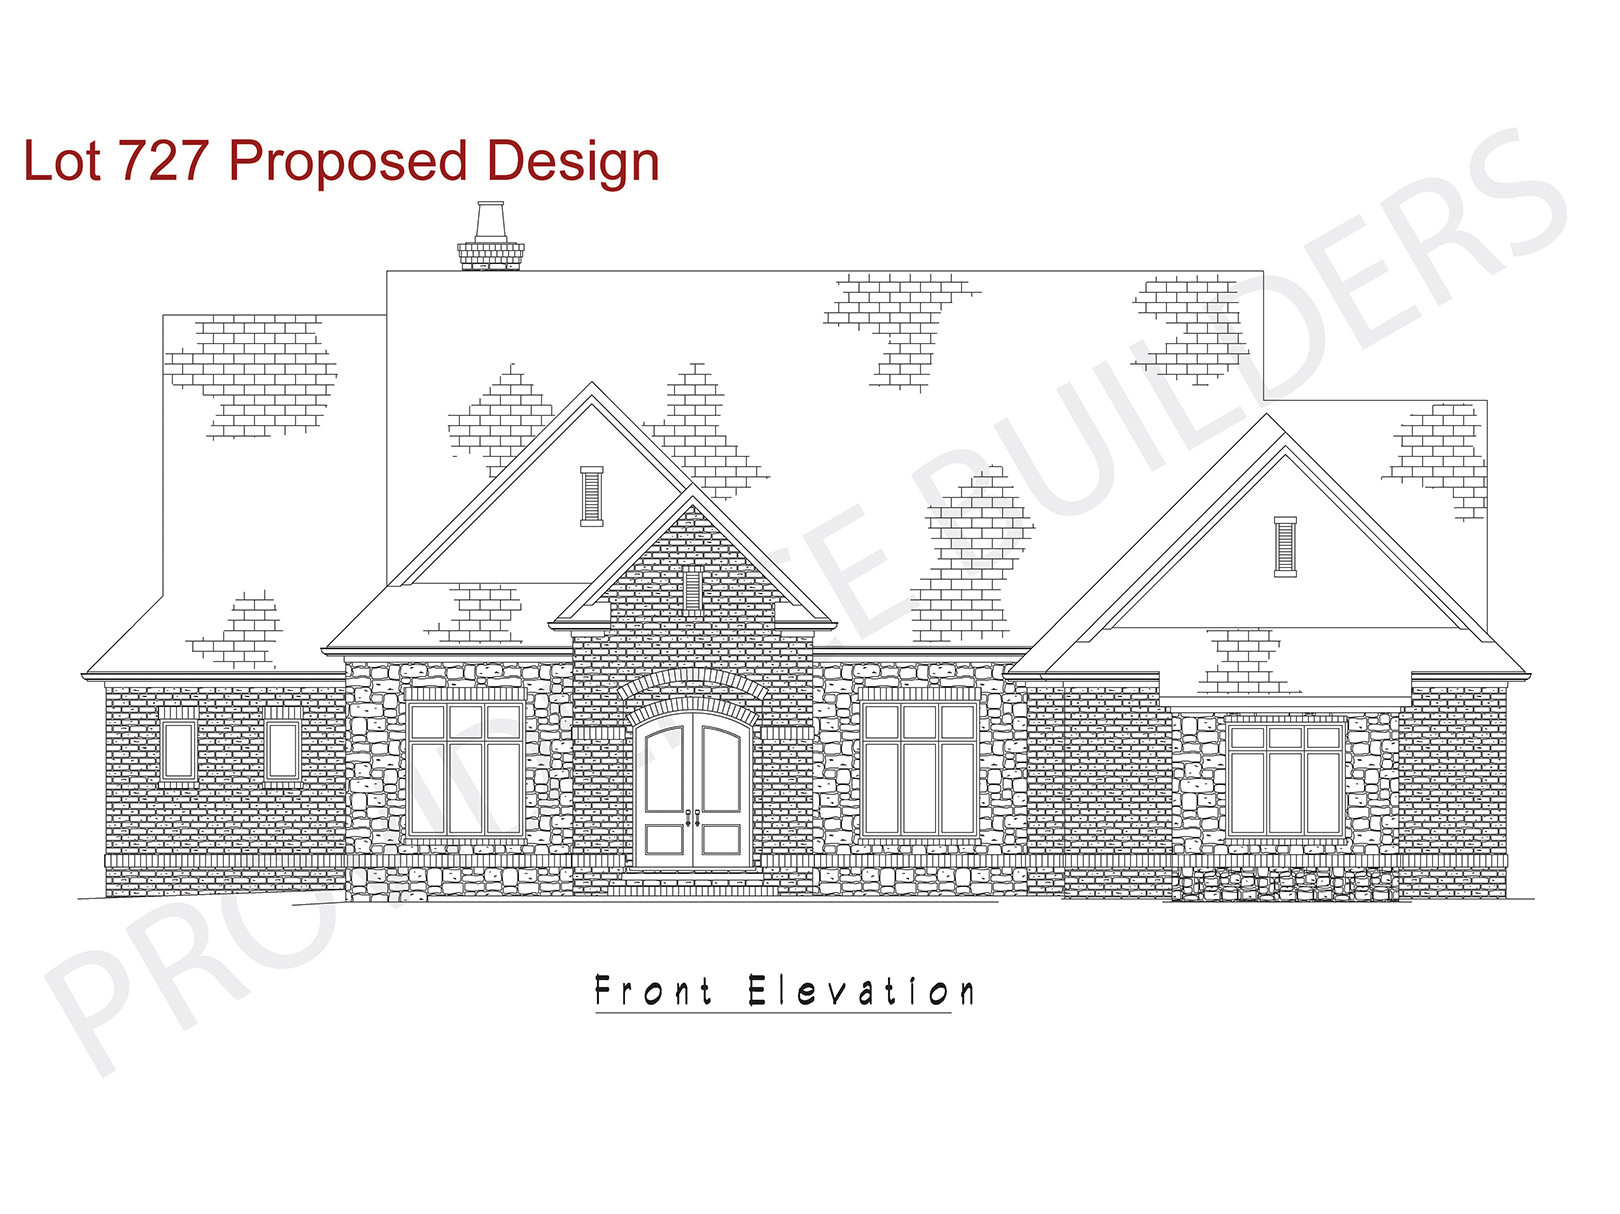 Lot 727 Front Elevation